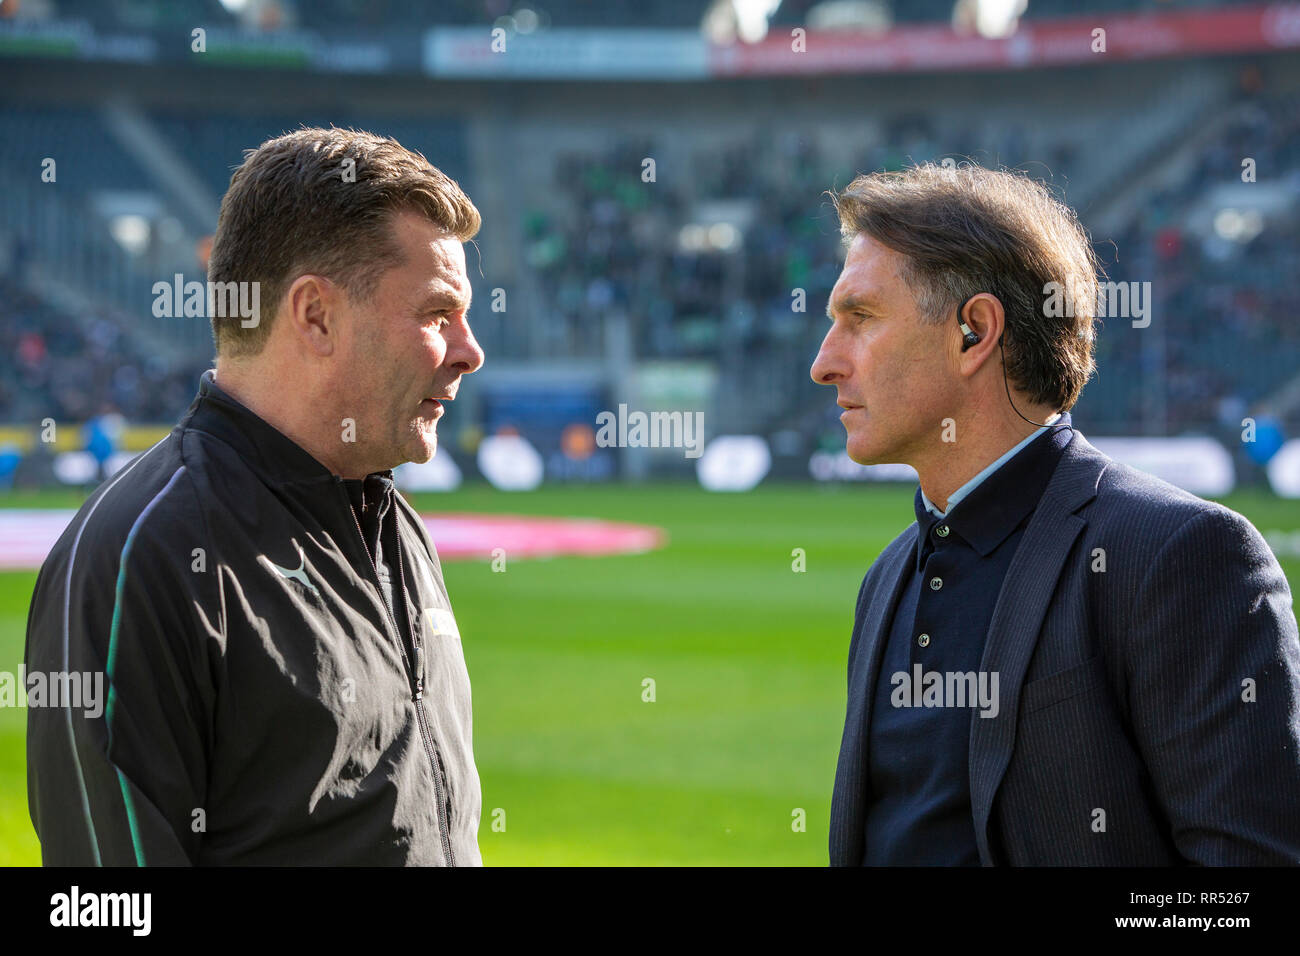 sports, football, Bundesliga, 2018/2019, Borussia Moenchengladbach vs VfL Wolfsburg 0-3, Stadium Borussia Park, head coaches Dieter Hecking (MG) left and Bruno Labbadia (Wolfsburg) talking, DFL REGULATIONS PROHIBIT ANY USE OF PHOTOGRAPHS AS IMAGE SEQUENCES AND/OR QUASI-VIDEO - Stock Image